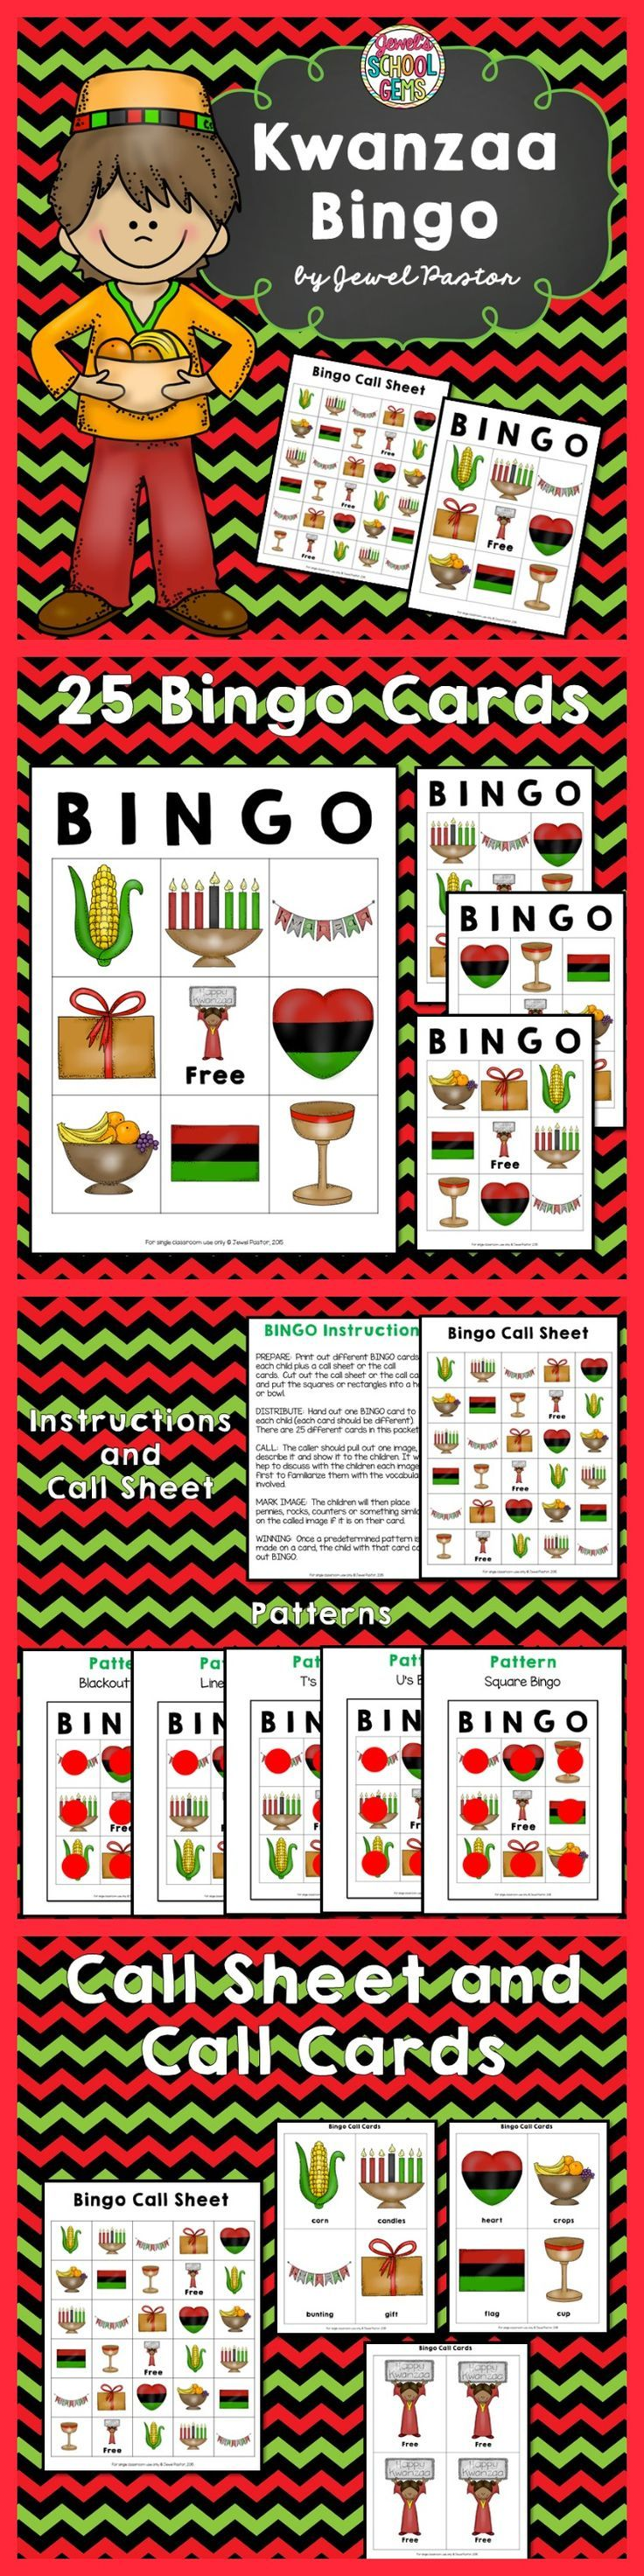 Kwanzaa : Kwanzaa Bingo Packet  KWANZAA BINGO   In search of fun Kwanzaa activities? Engage your students this Kwanzaa Holiday with this fun Kwanzaa Bingo! This packet contains instructions, patterns, bingo cards, a call sheet and call cards. See the Preview to have an idea of what is inside this Kwanzaa packet.